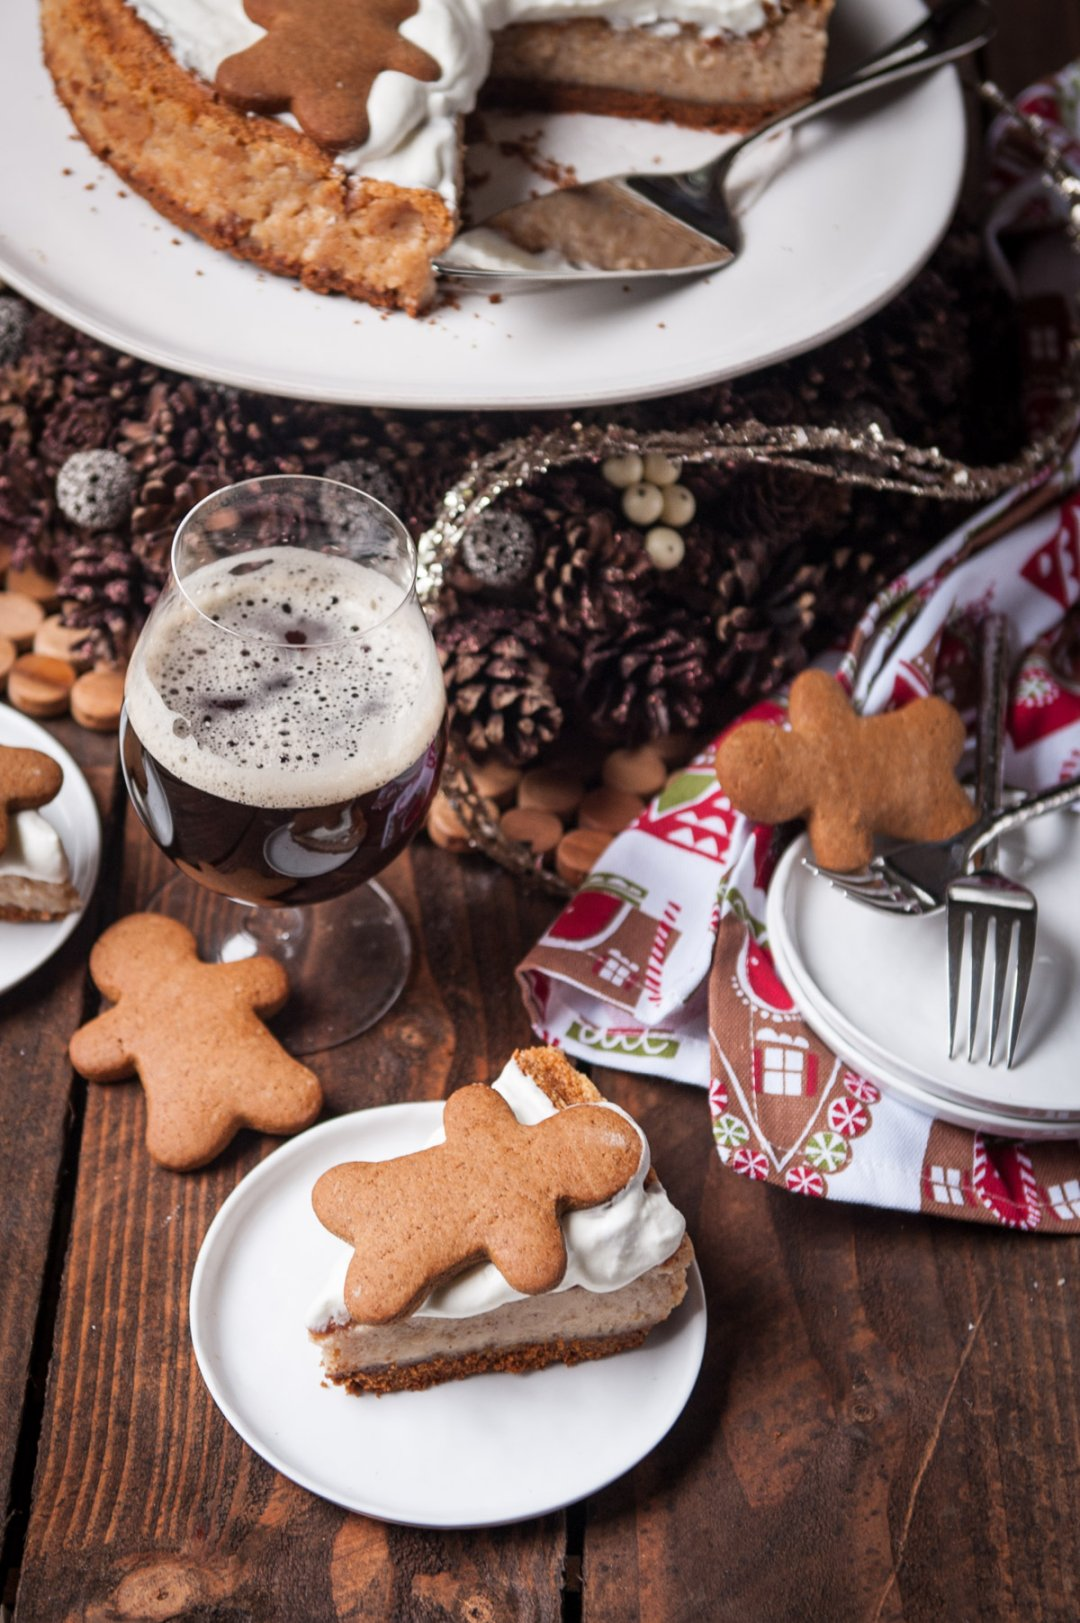 Cheesecake slice with a gingerbread man cookie on top on a small white plate next to a glass of dark beer